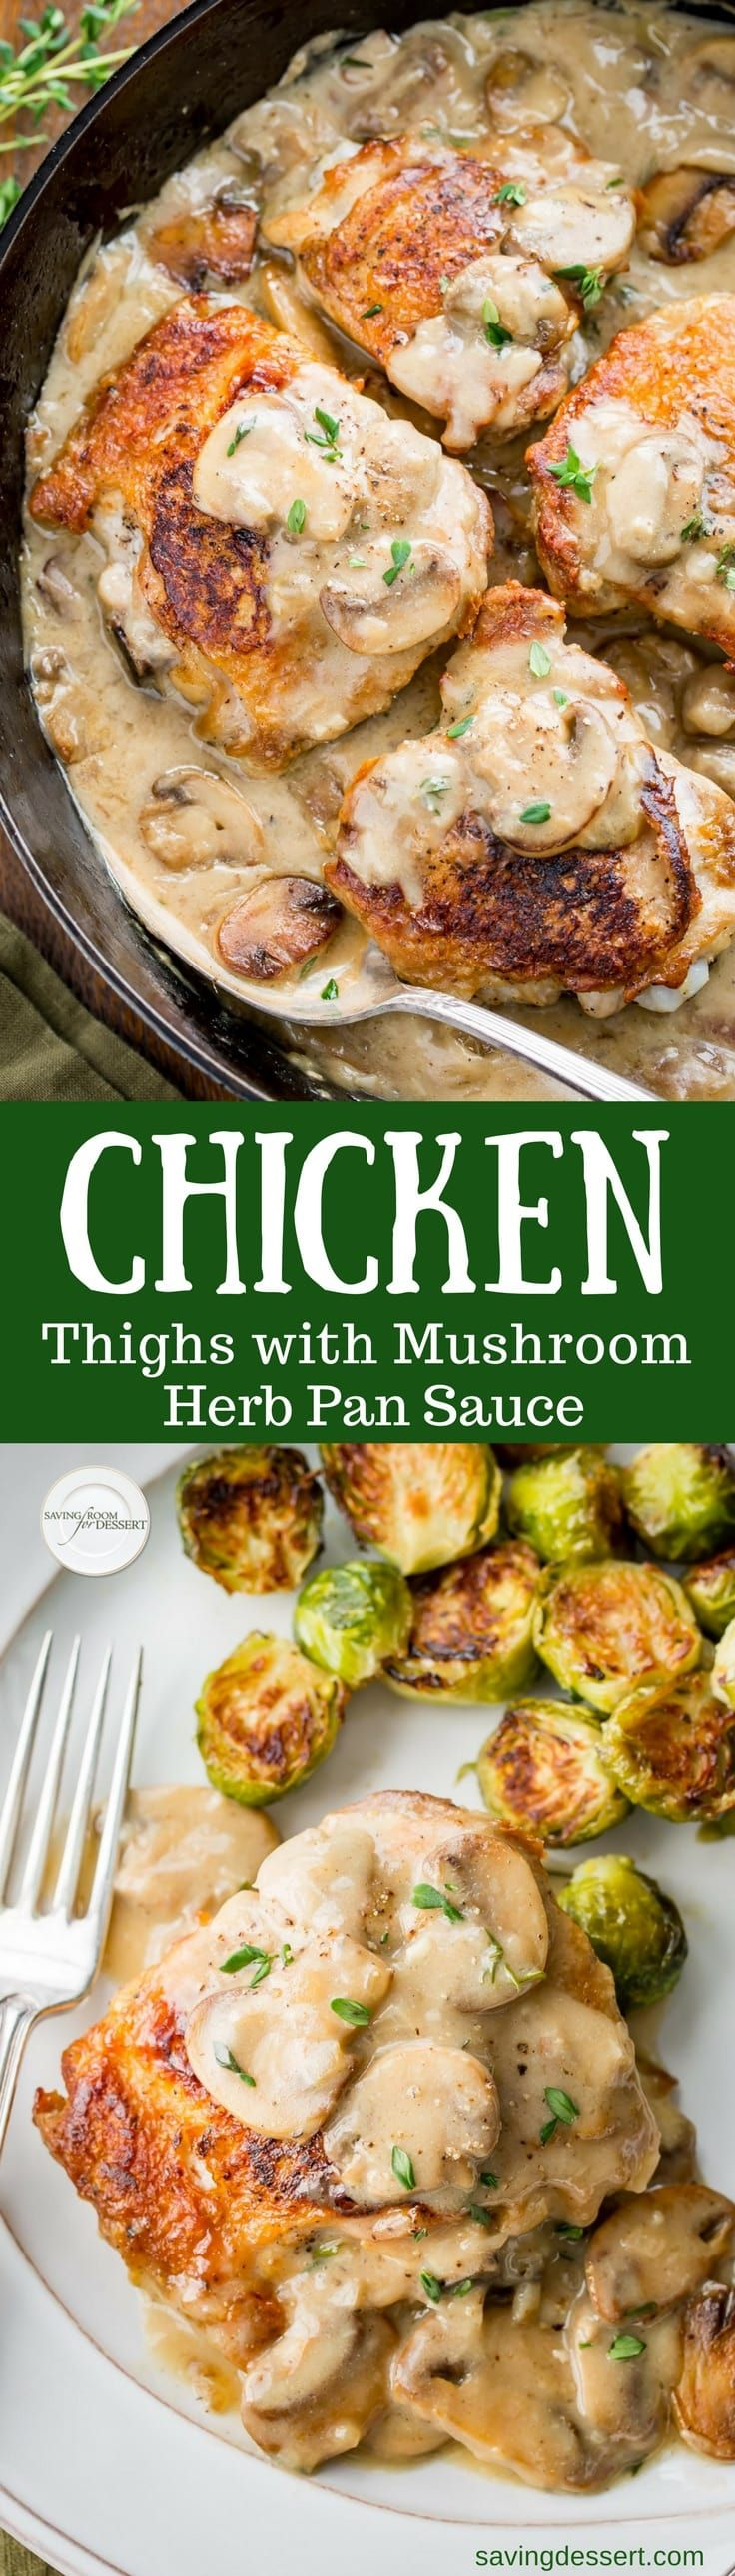 Chicken Thighs with Mushroom Herb Pan Sauce - tender, juicy and inexpensive,